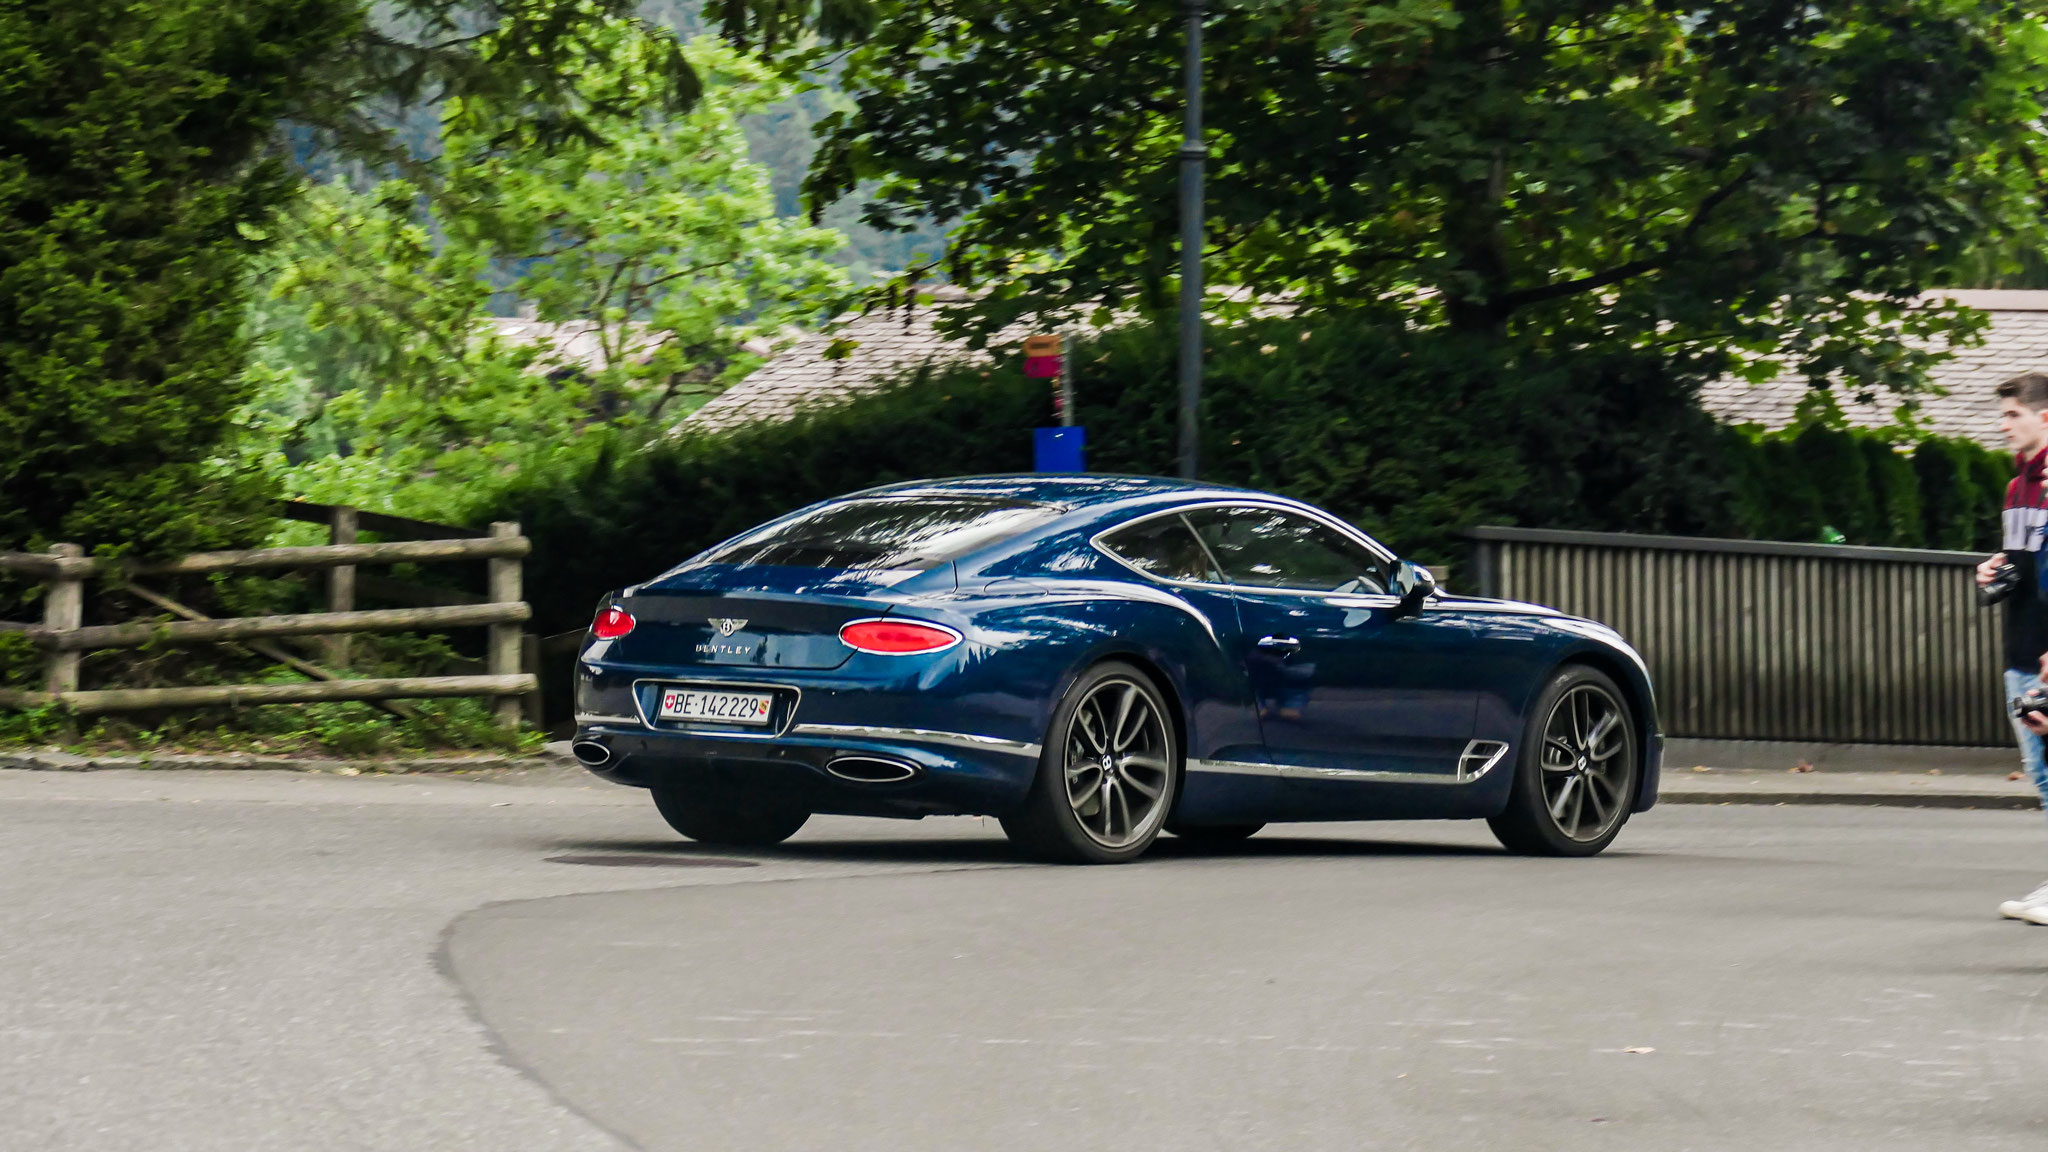 Bentley Continental GT - BE-142229 (CH)